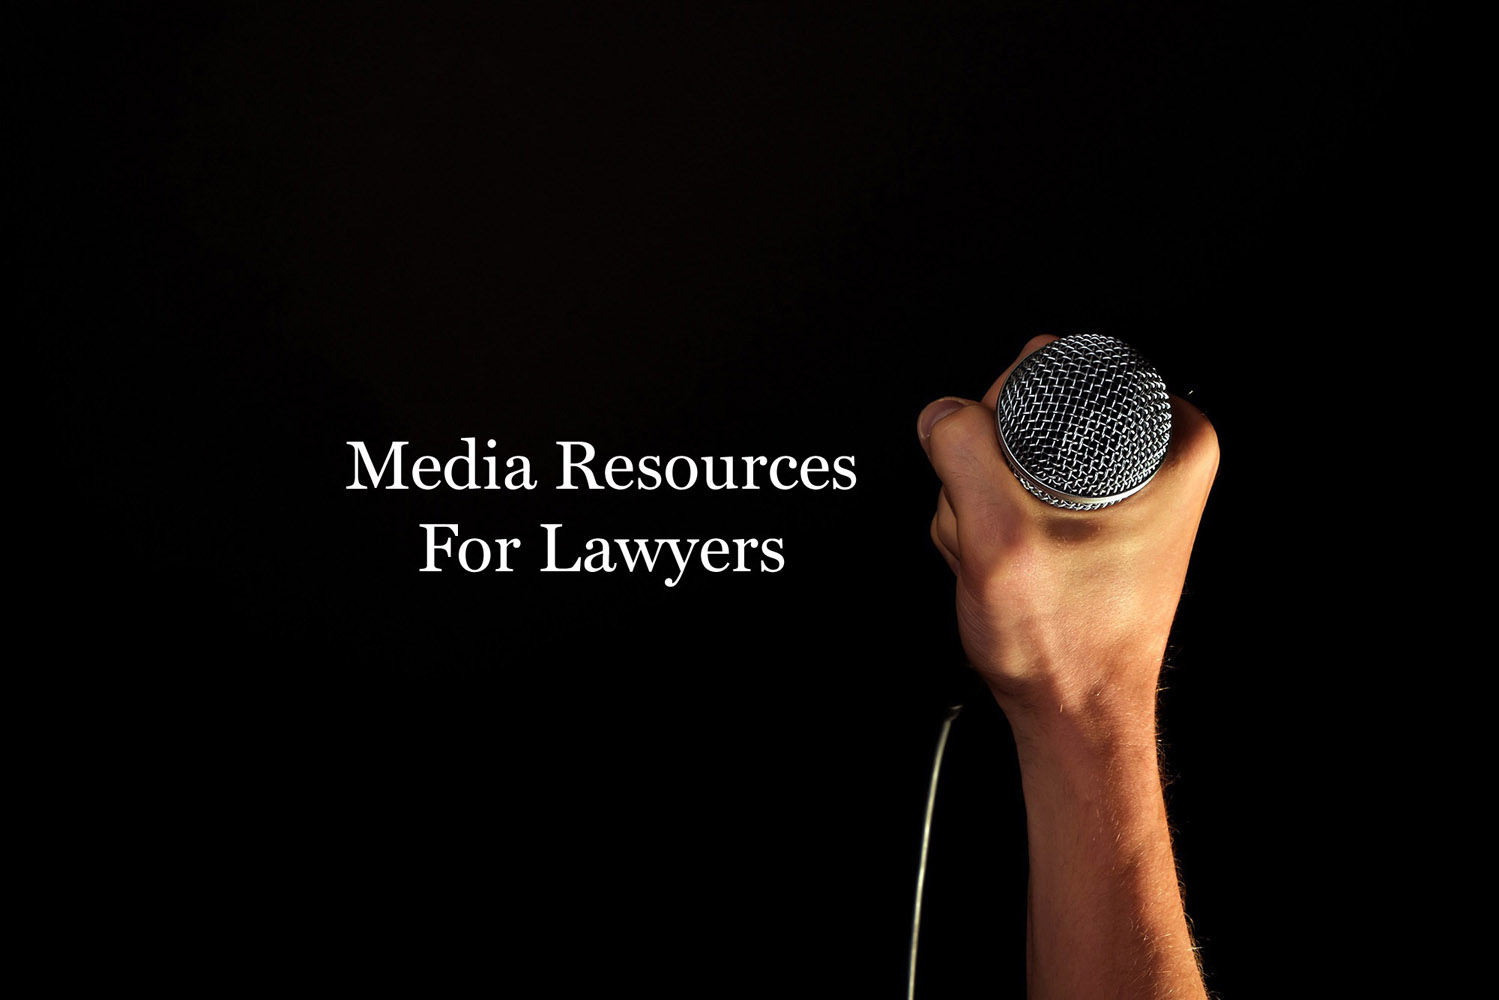 Media Resources For Lawyers